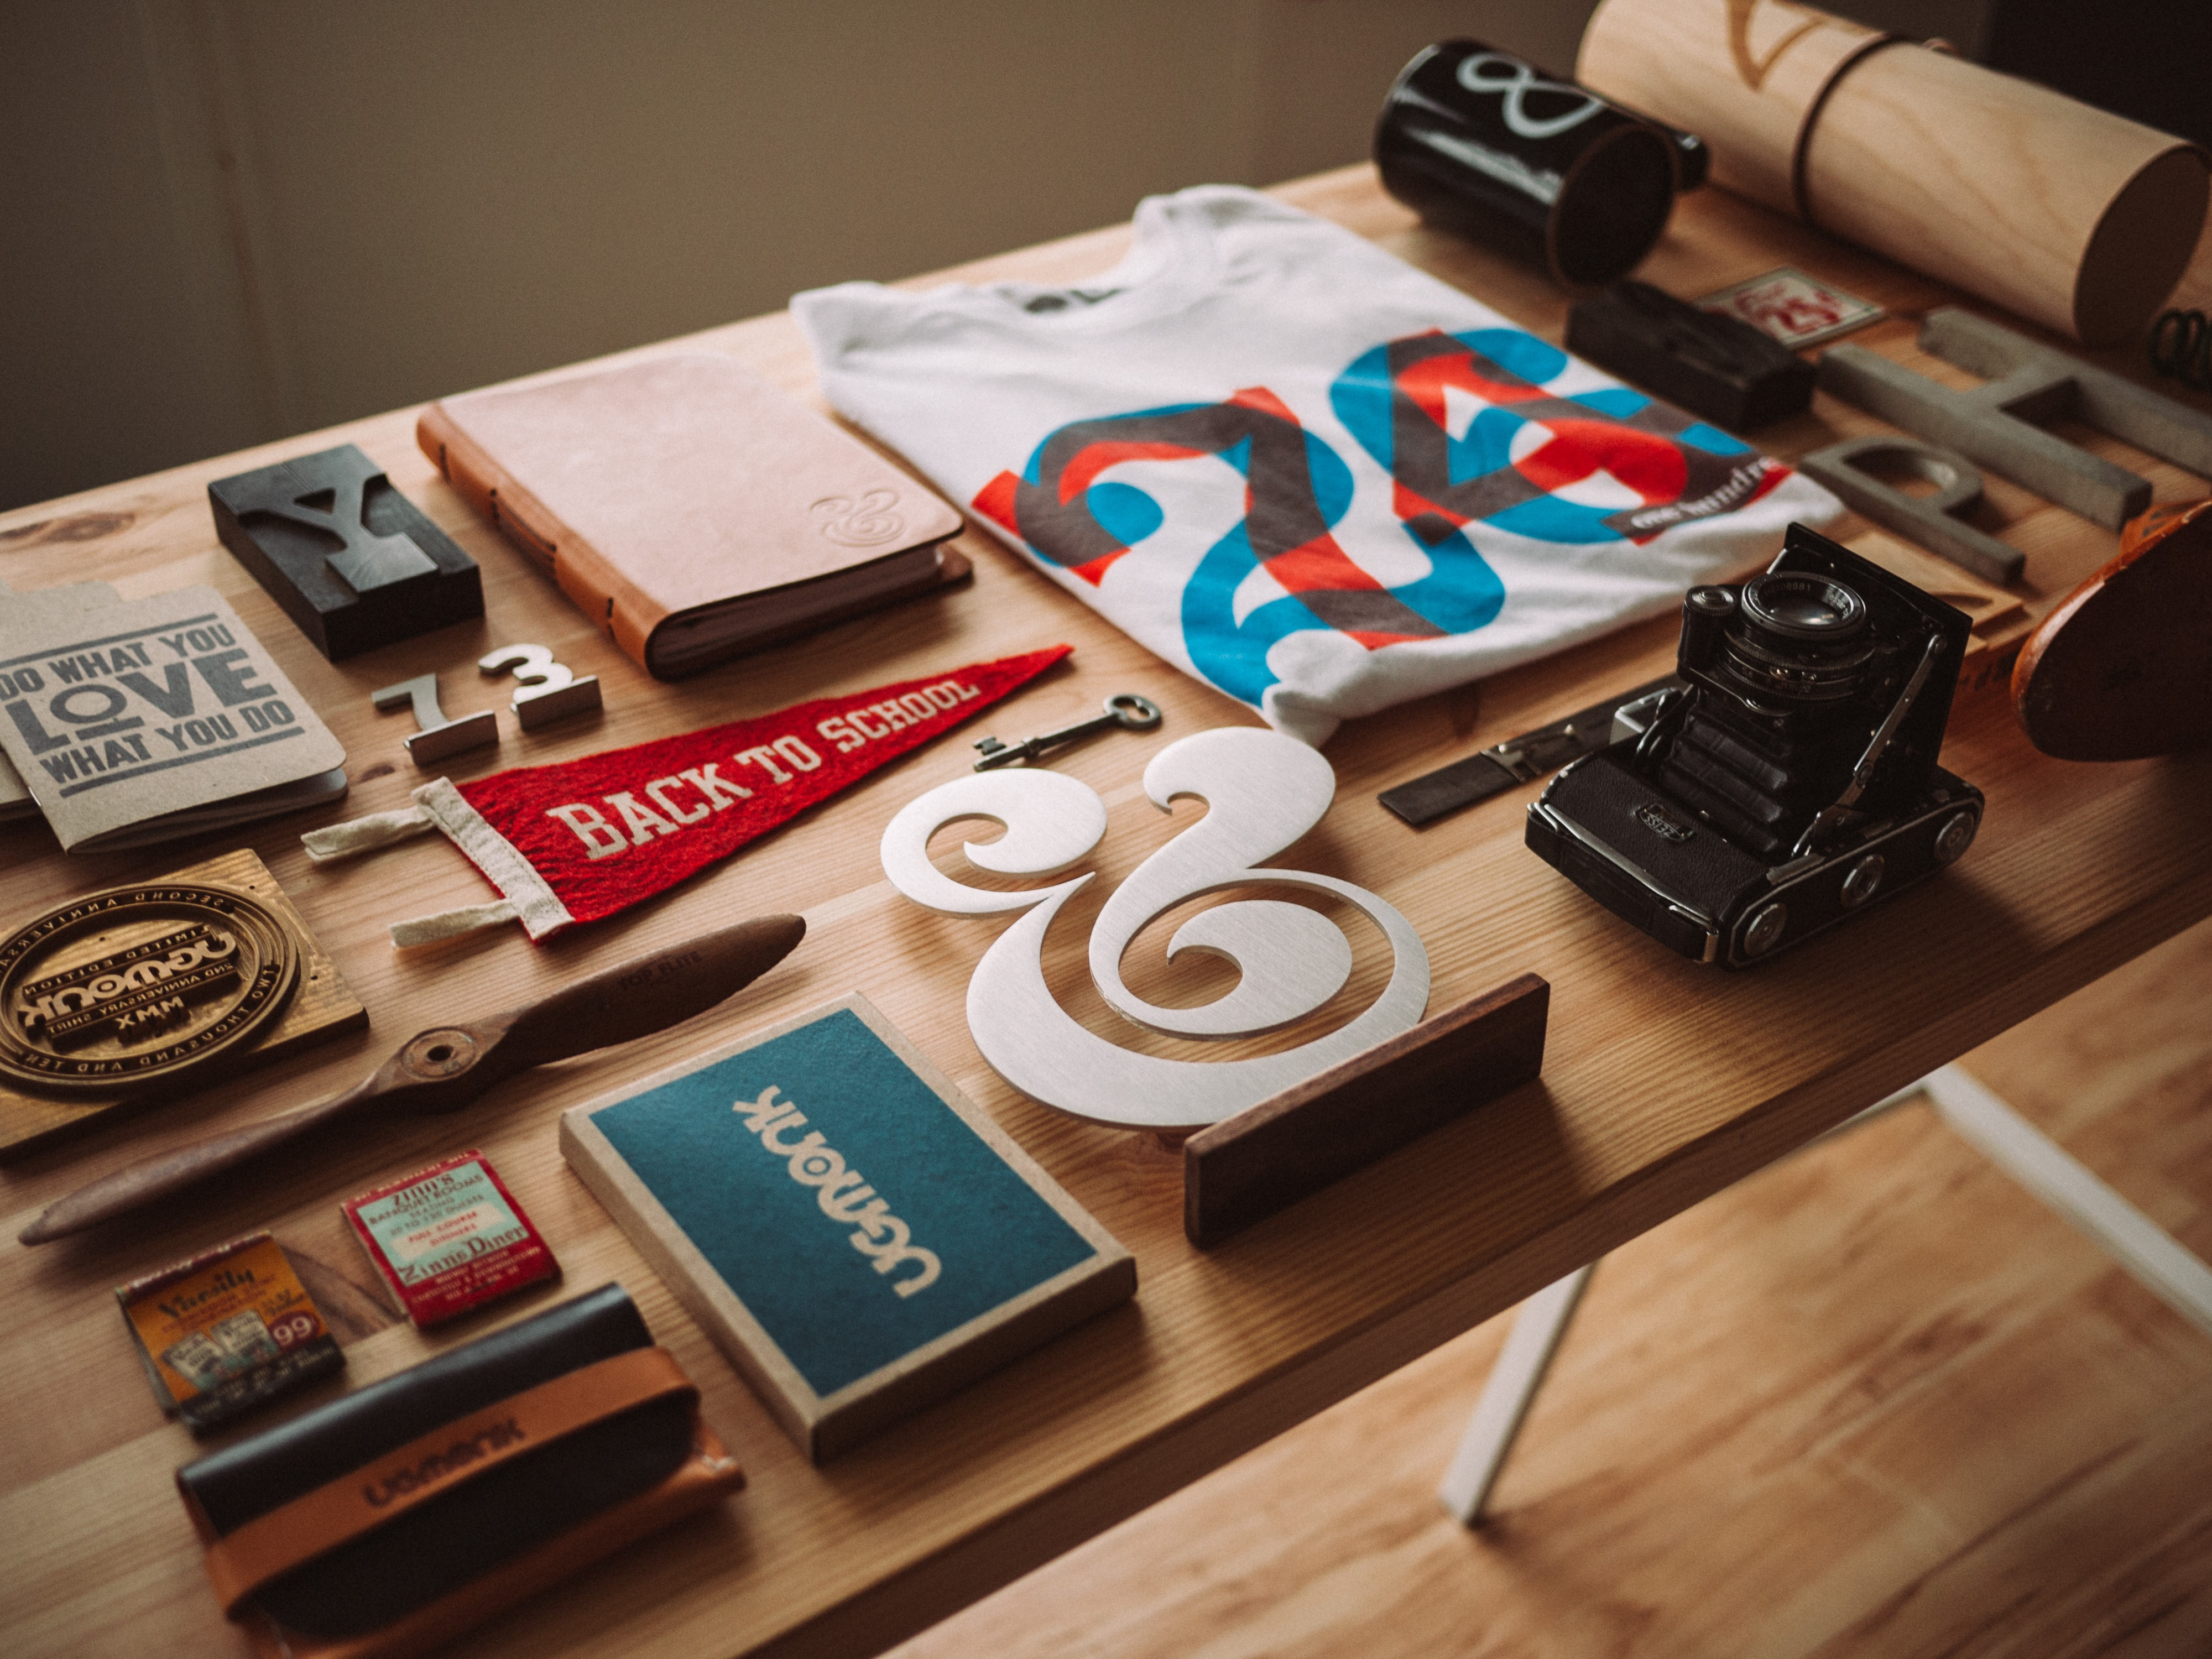 A flatlay with a t-shirt, a camera, a notebook and various trinkets on a table